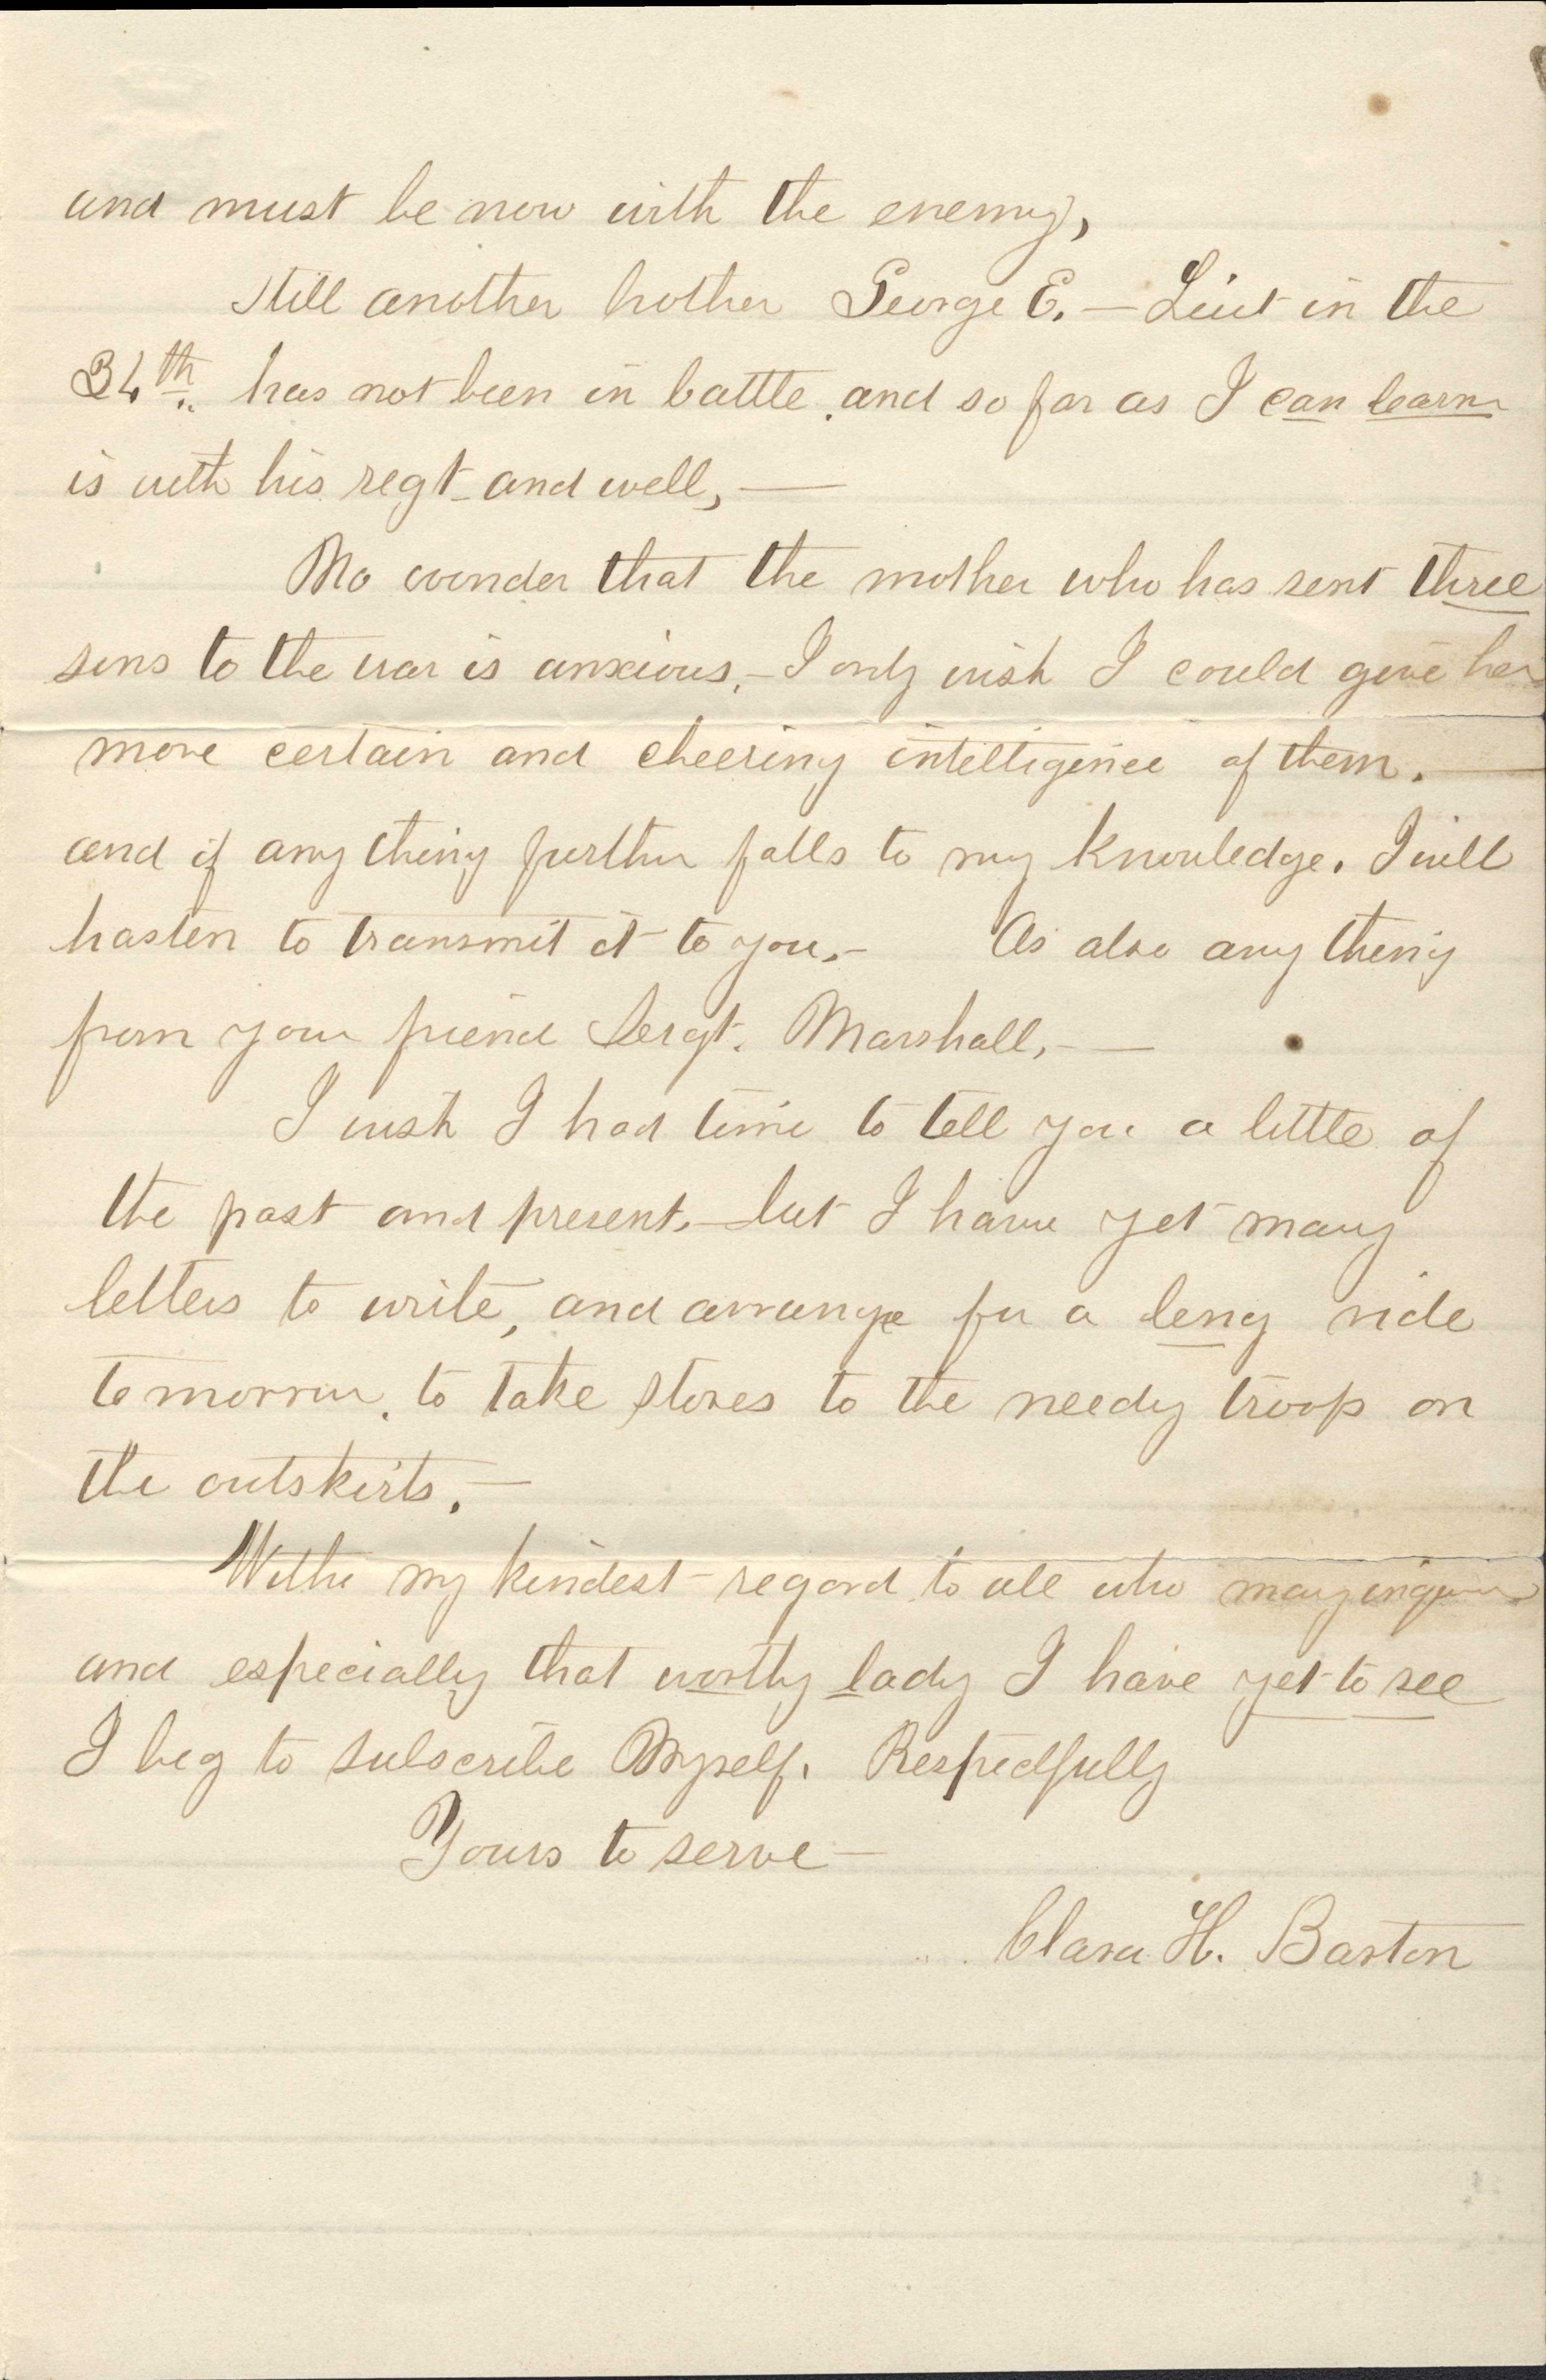 Letter from Barton to Proctor Sept.9,1862